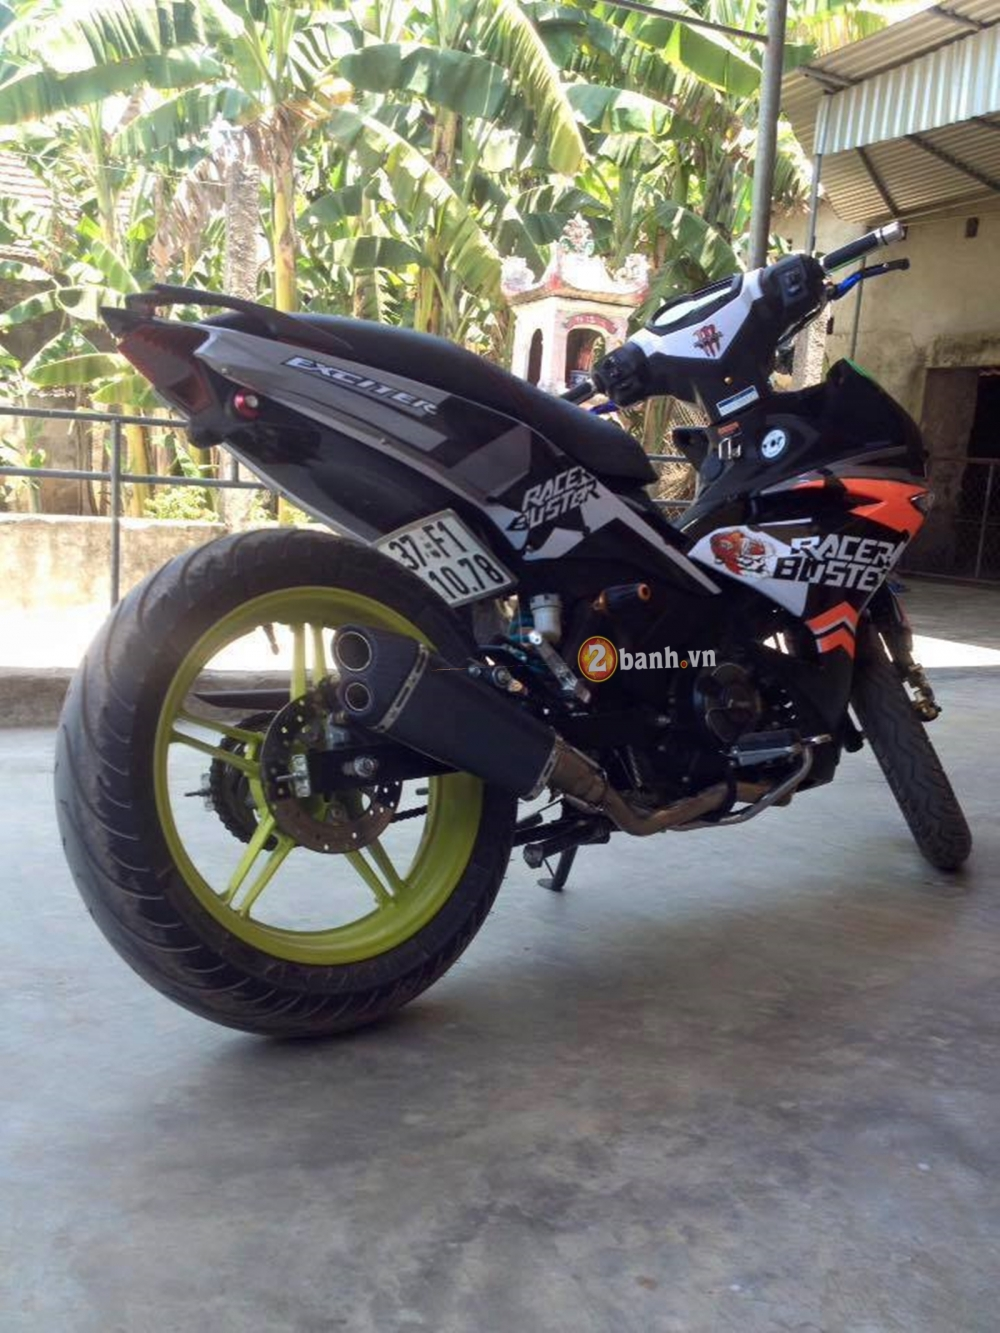 Tem dau Racer Buster cho Exciter150